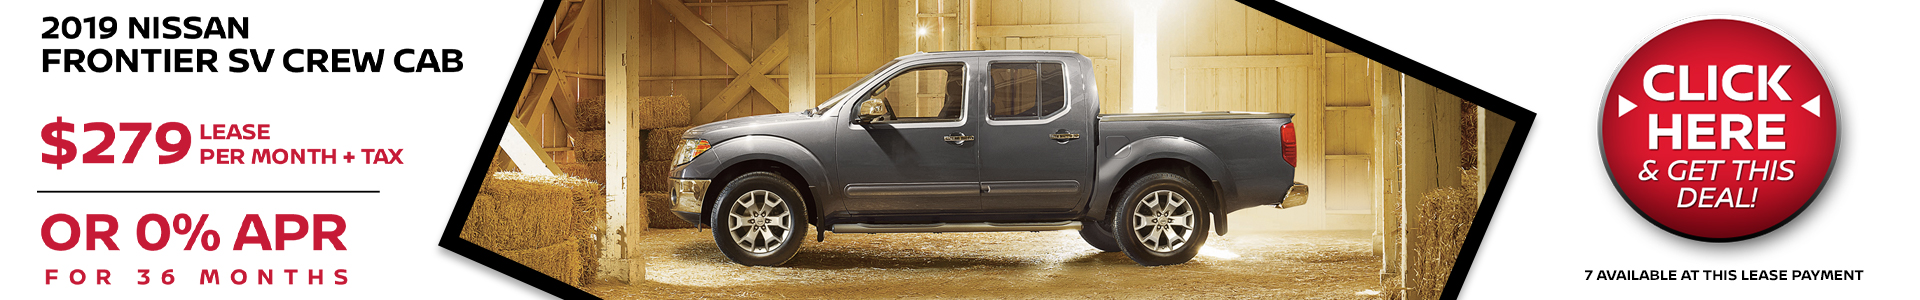 Mossy Nissan - Nissan Frontier $279 Lease